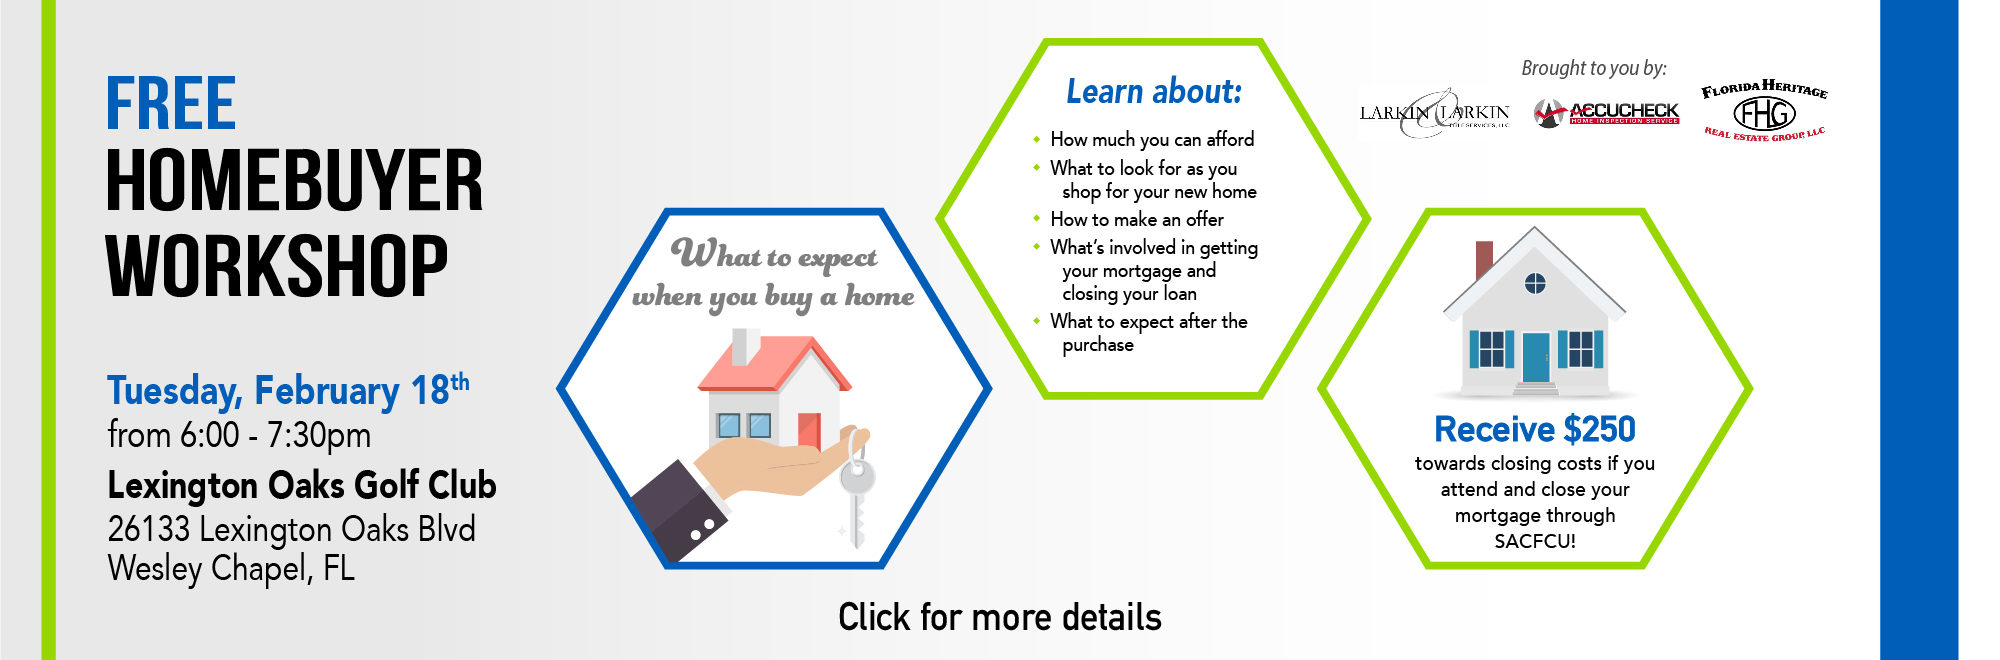 SACFCU is hosting a Free Homebuyer Workshop on Tuesday, February 18, 2020 from 6:00 - 7:30pm at Lexington Oaks Golf Club. Click anywhere on the banner for full details.